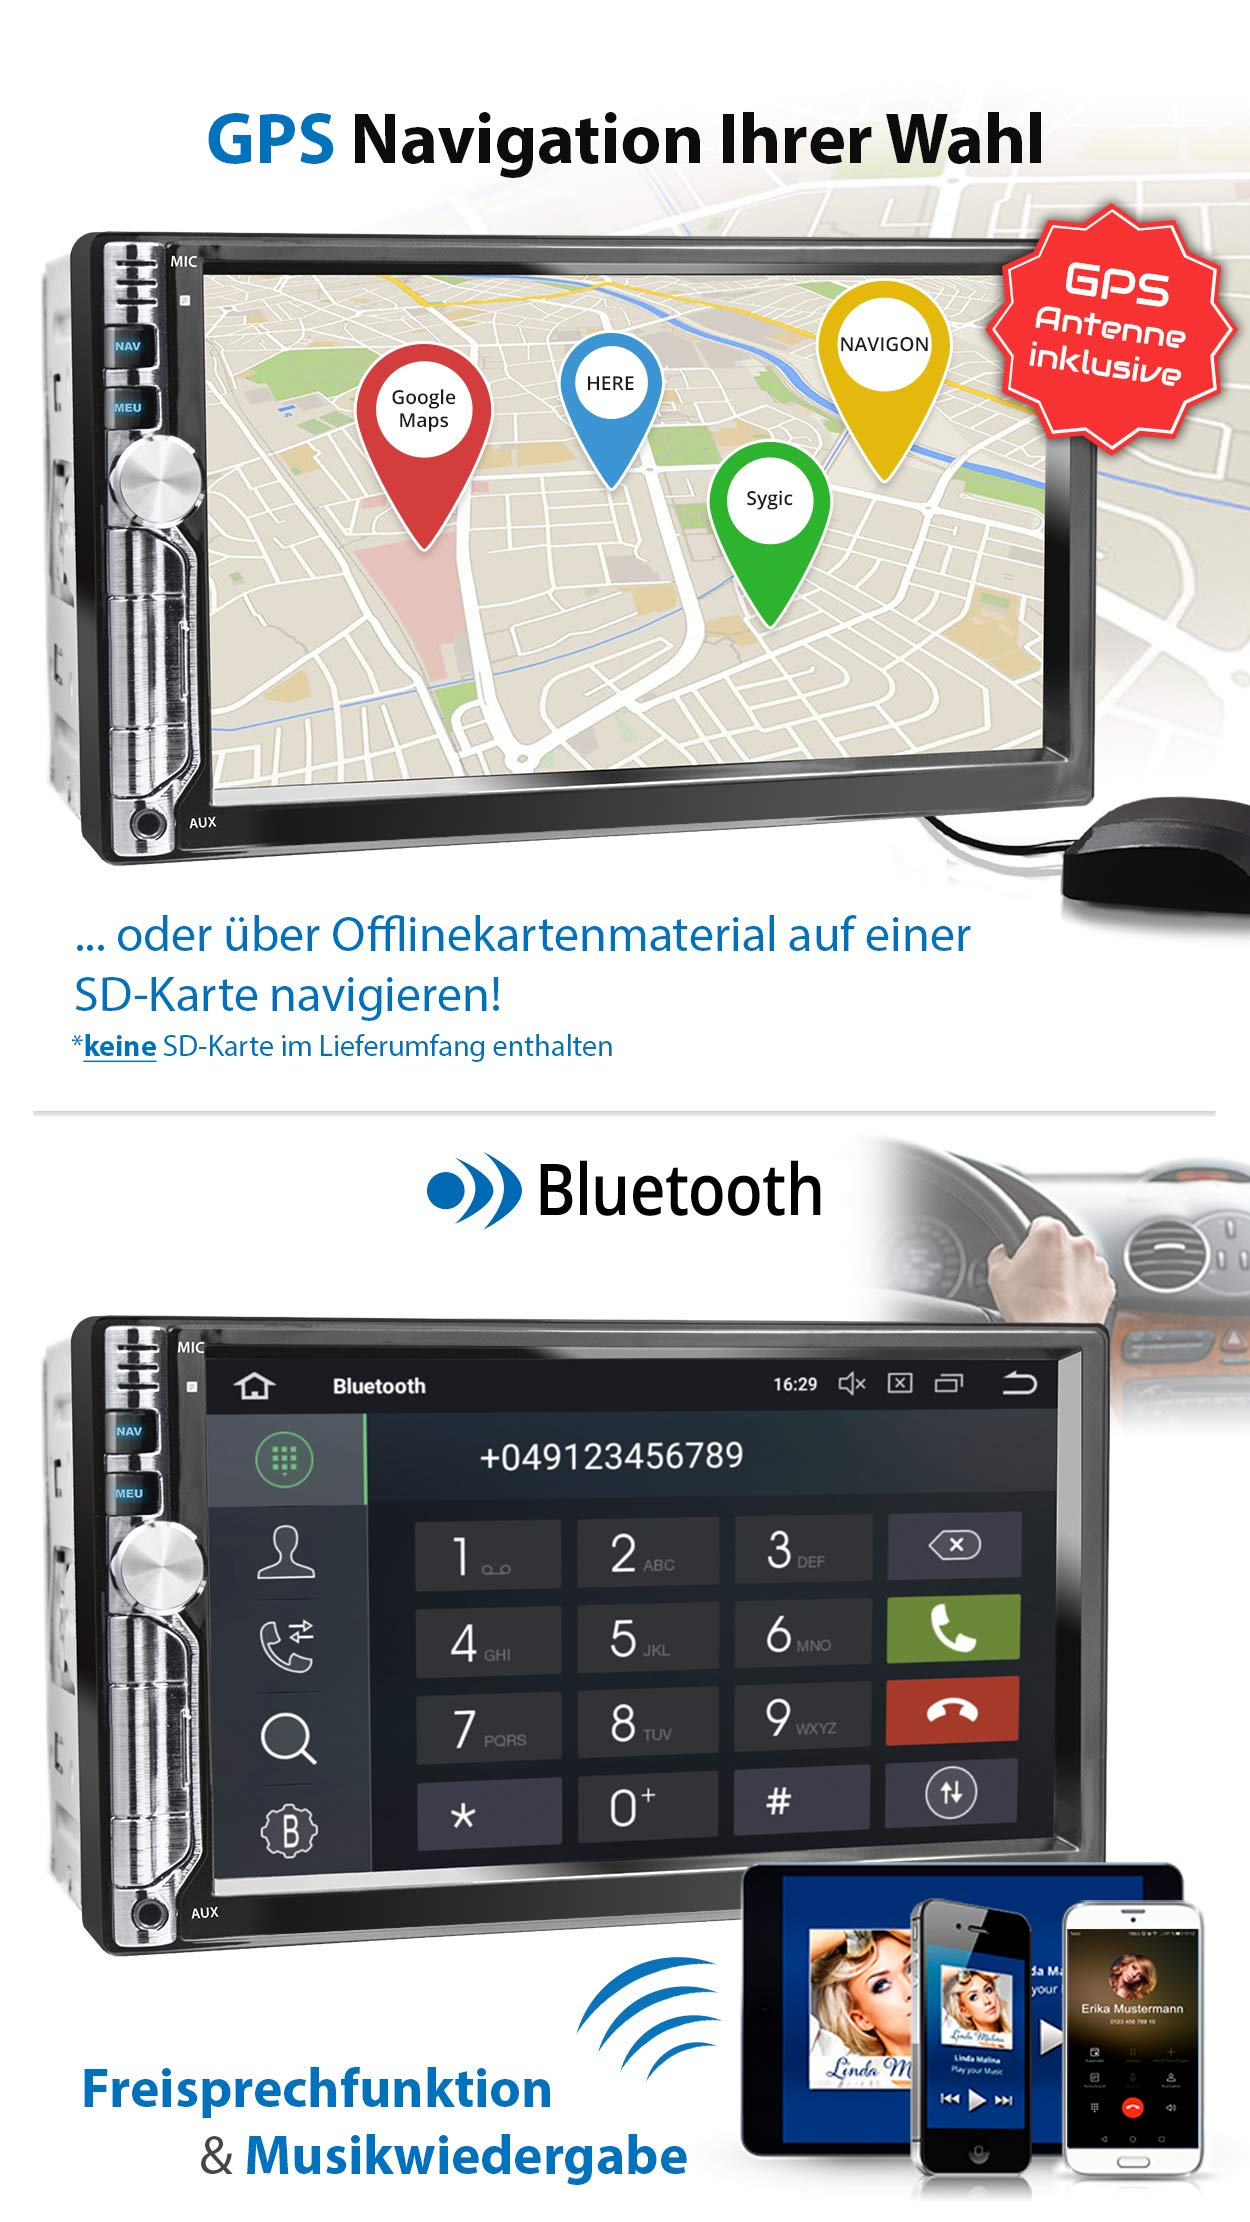 XOMAX-XM-2VA756-Autoradio-mit-Android-81-QuadCore-2GB-RAM-16GB-ROM-GPS-Navigation-I-Support-WiFi-WLAN-3G-4G-DAB-OBD2-I-Bluetooth-7-Zoll-18-cm-Touchscreen-USB-SD-AUX-2-DIN